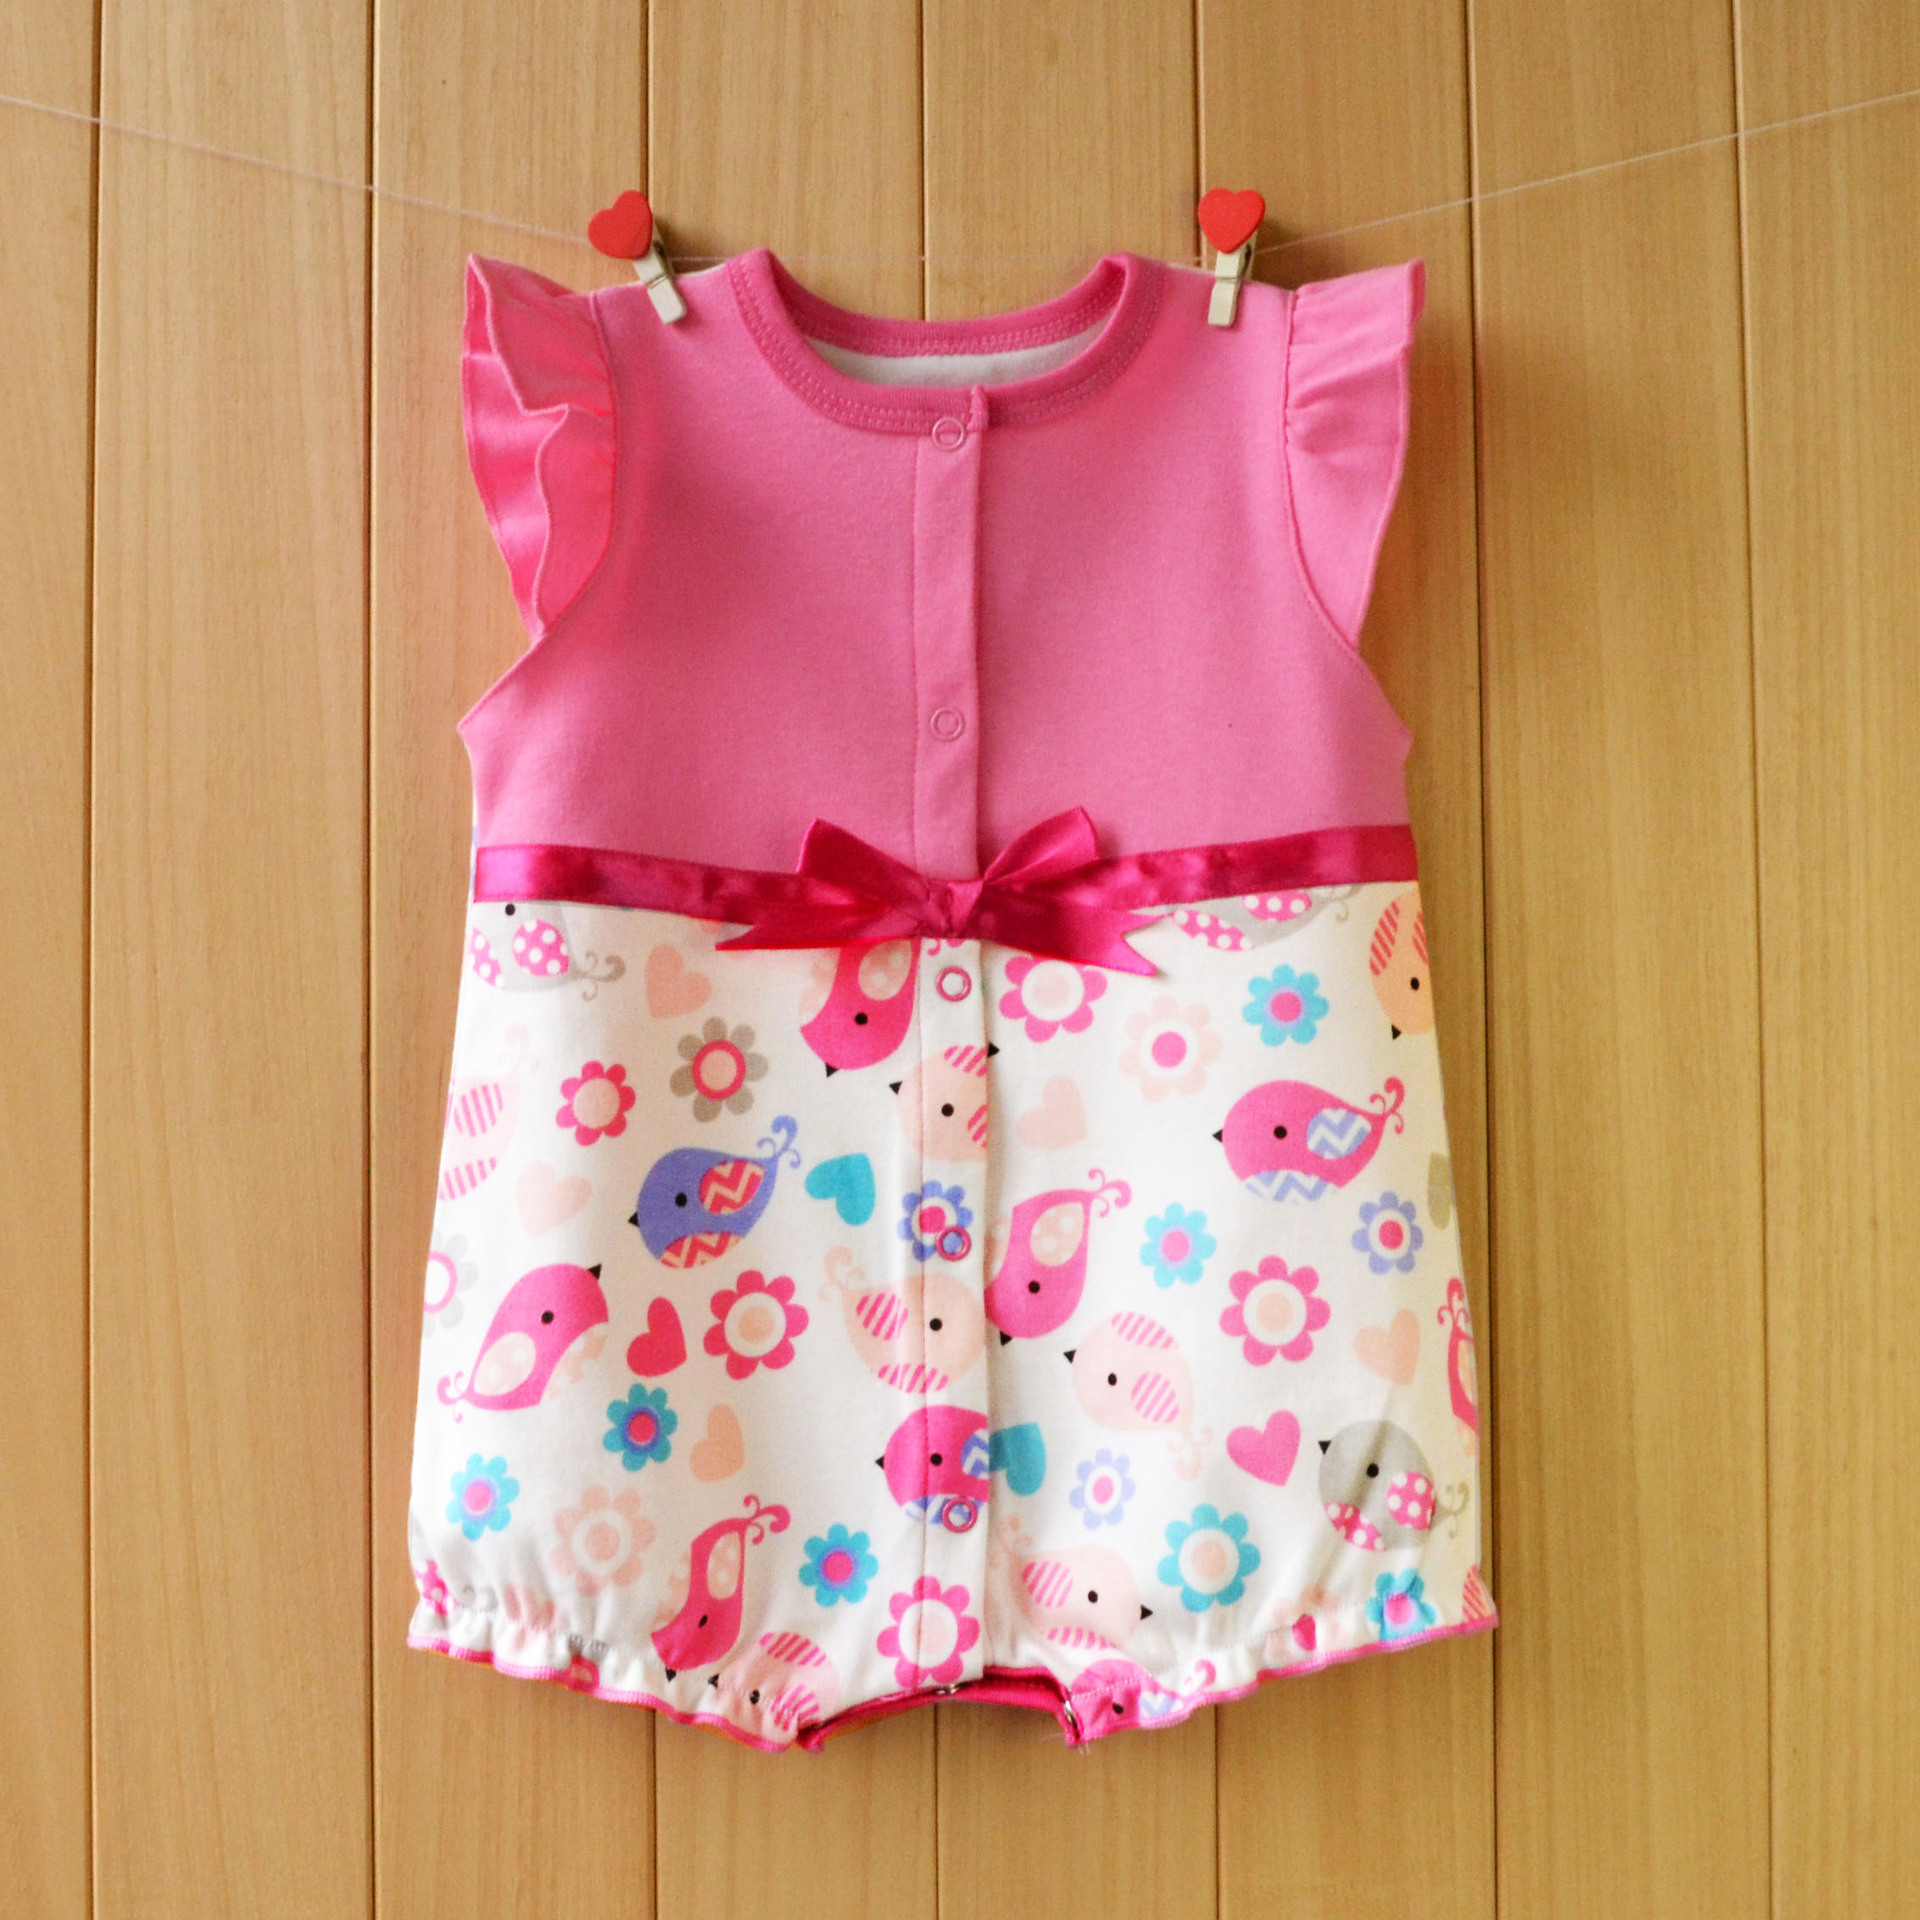 Climbing clothes picture more detailed picture about Baby clothing designers